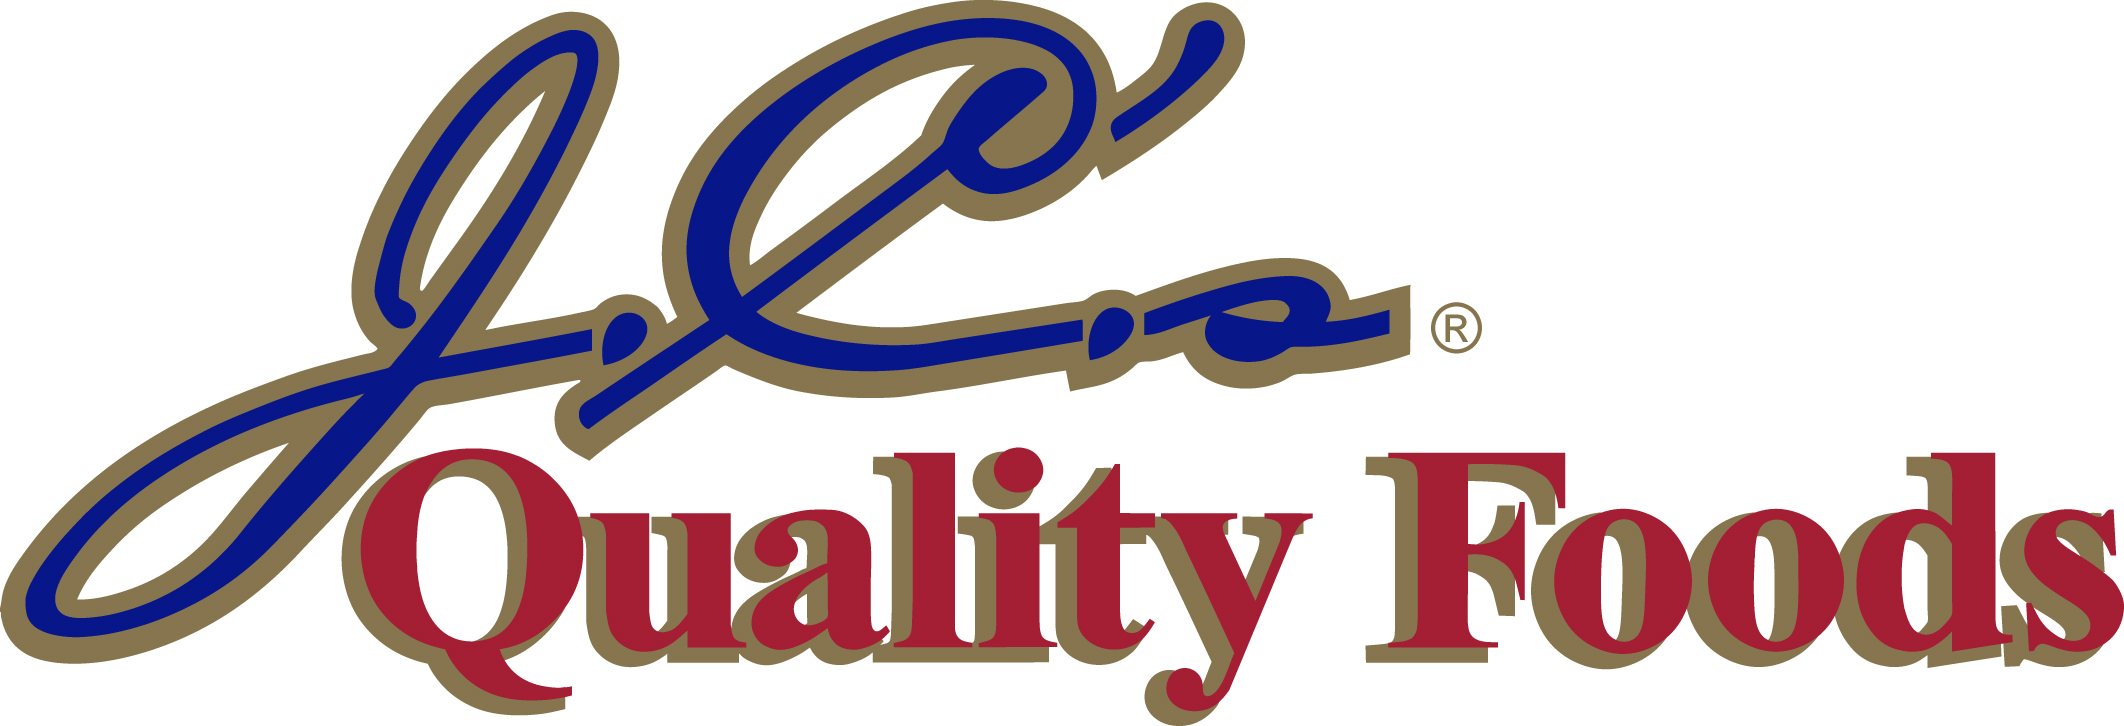 J.C.'s Quality Foods Pty Ltd